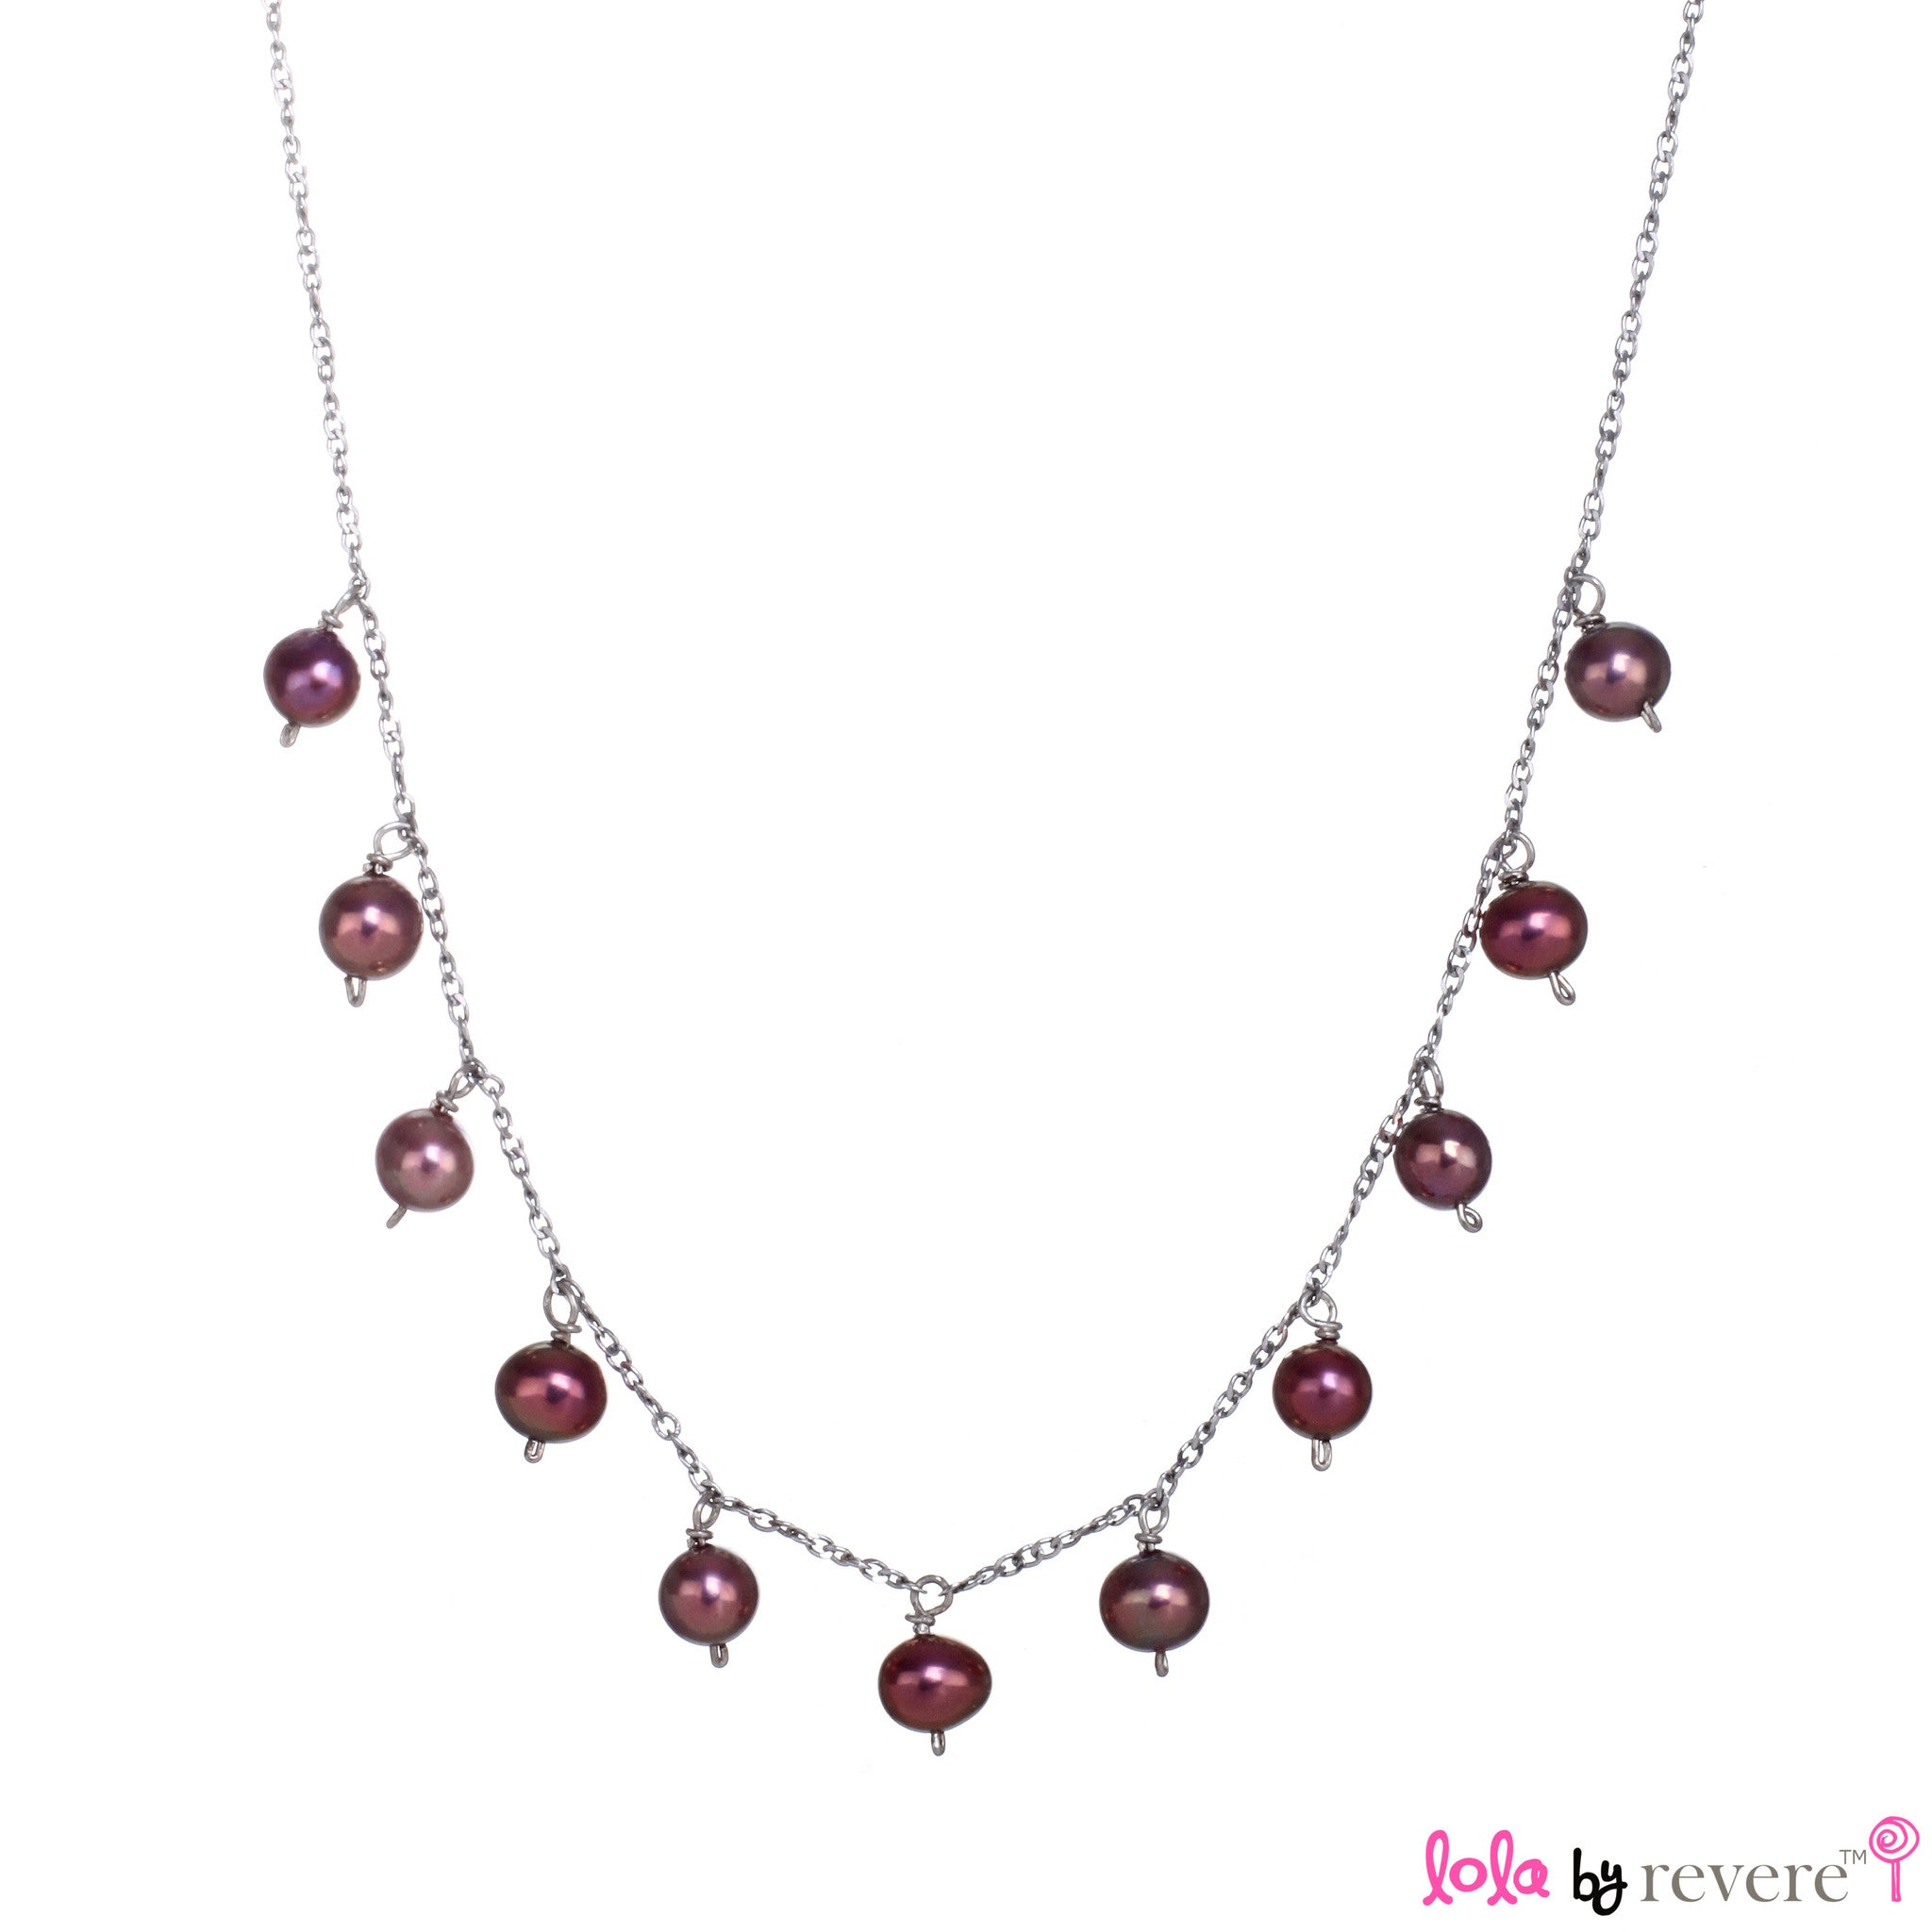 necklace leighola crimson n collections fiery necklaces royal